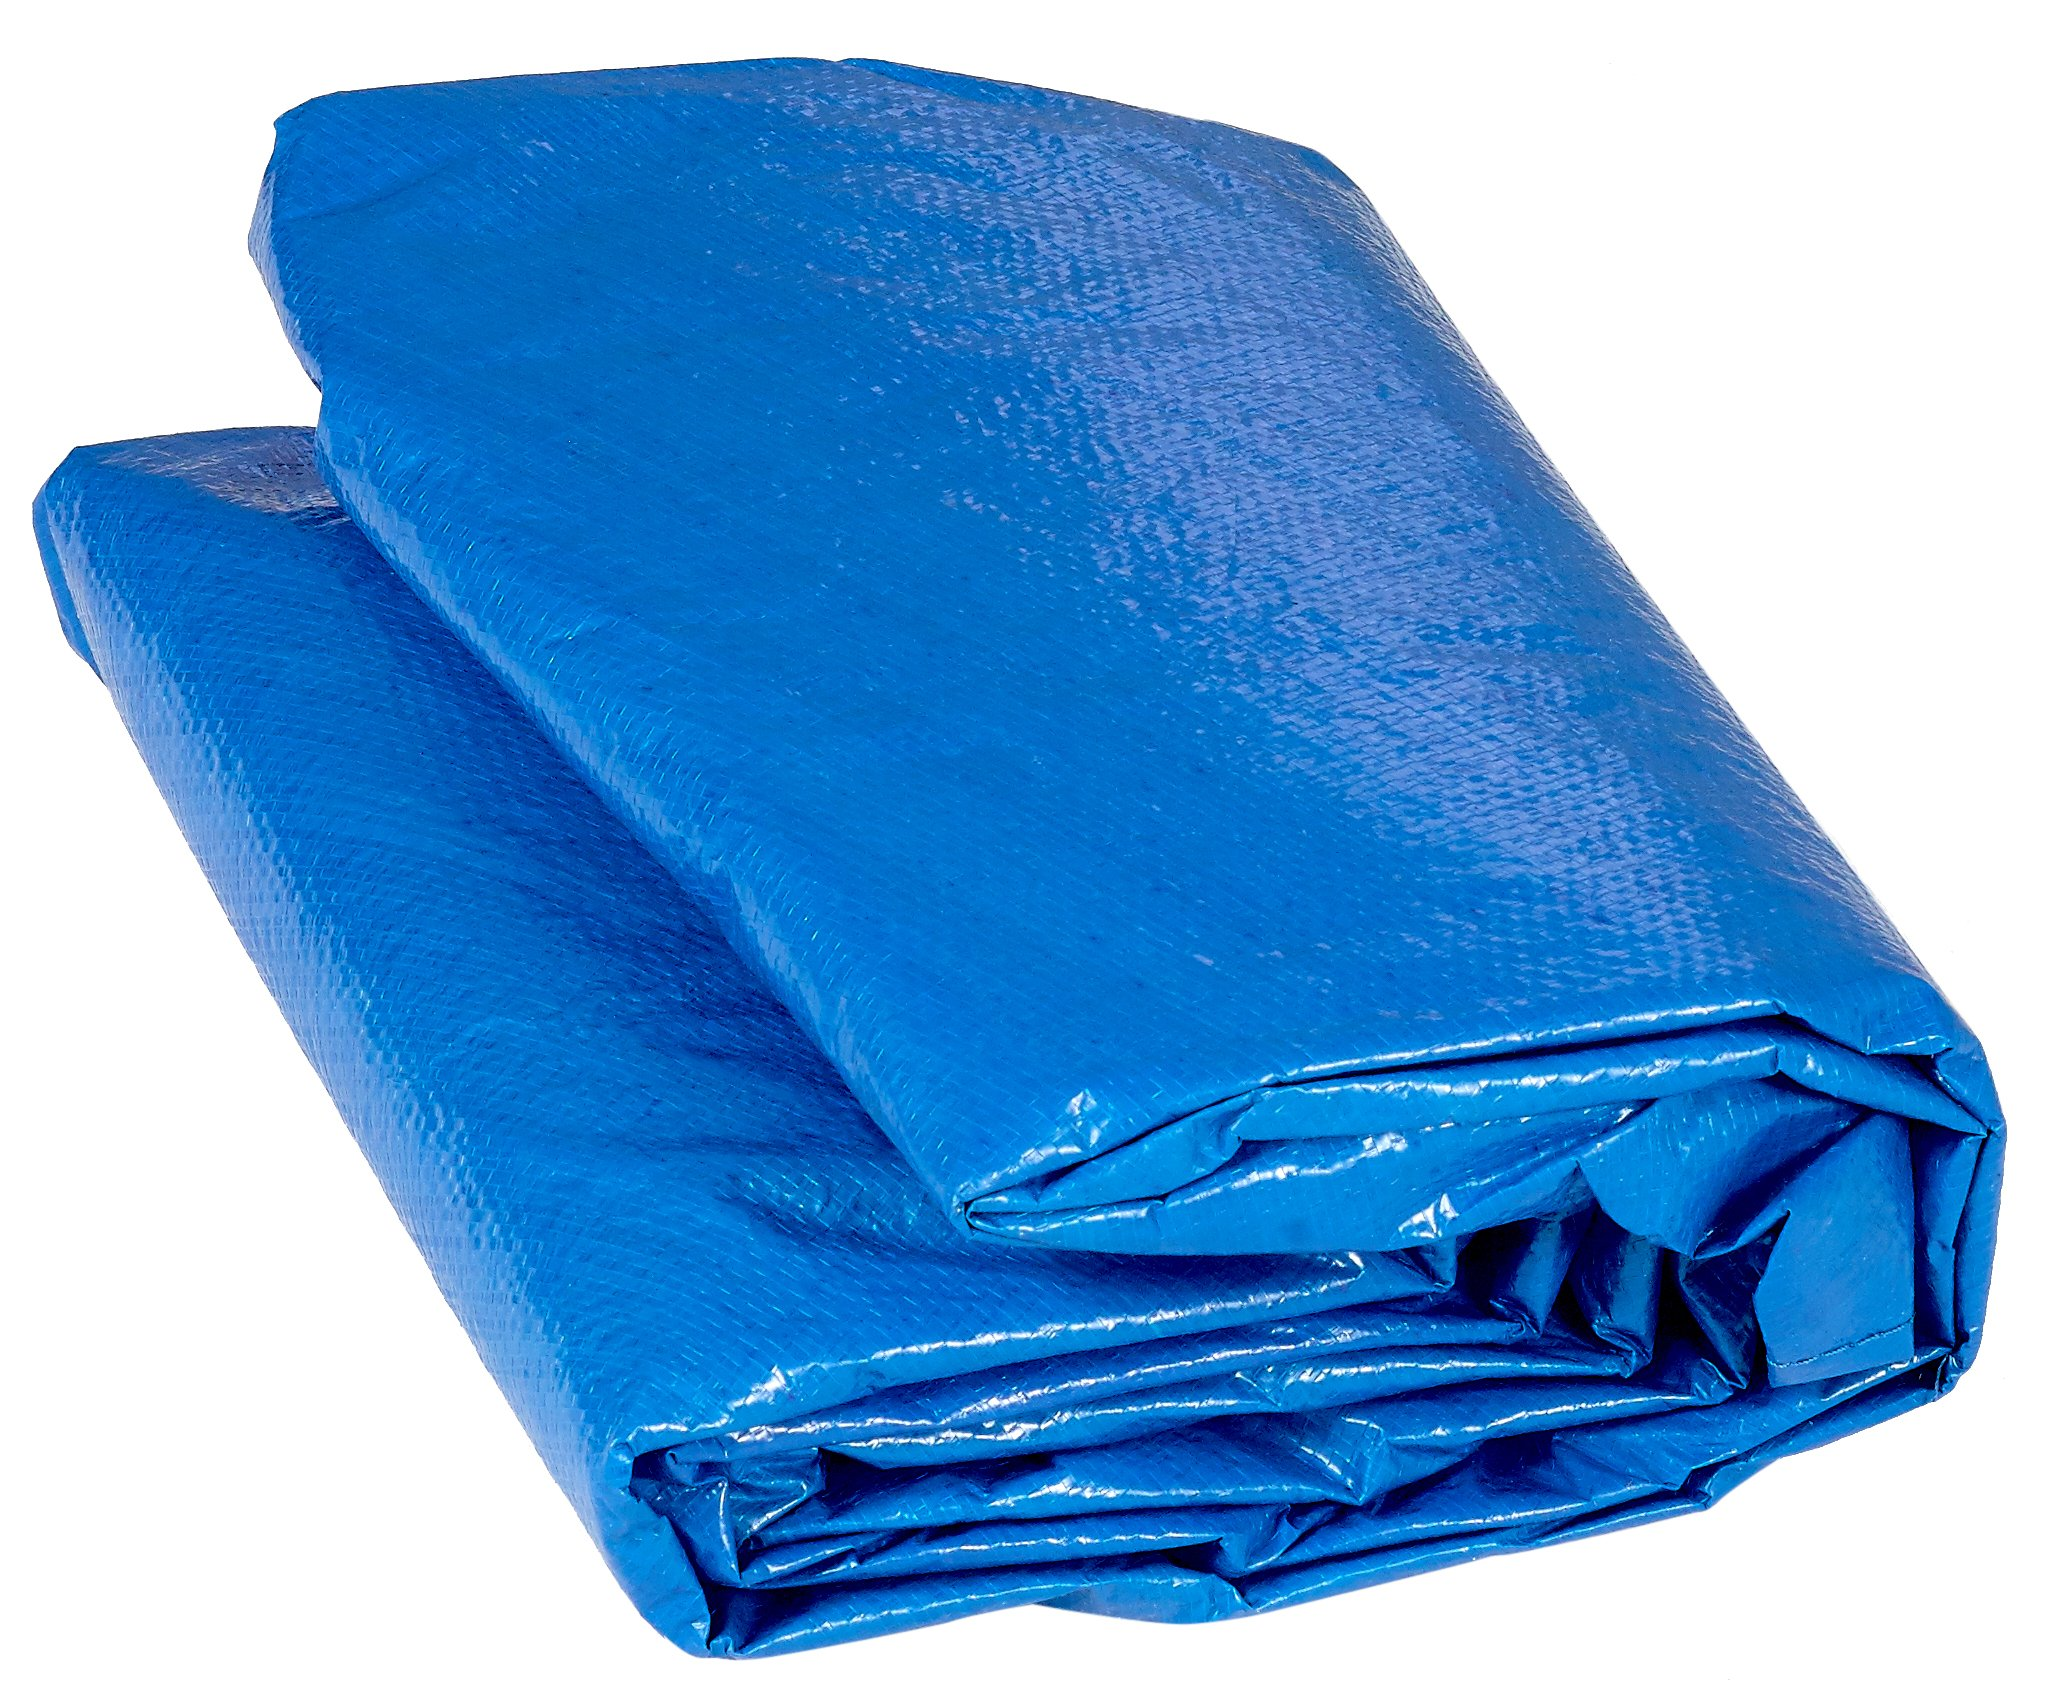 Upper Bounce 14' Trampoline Protection Cover (Weather & Rain Cover) Fits for 14 FT. Round Trampoline Frames - Blue by Upper Bounce